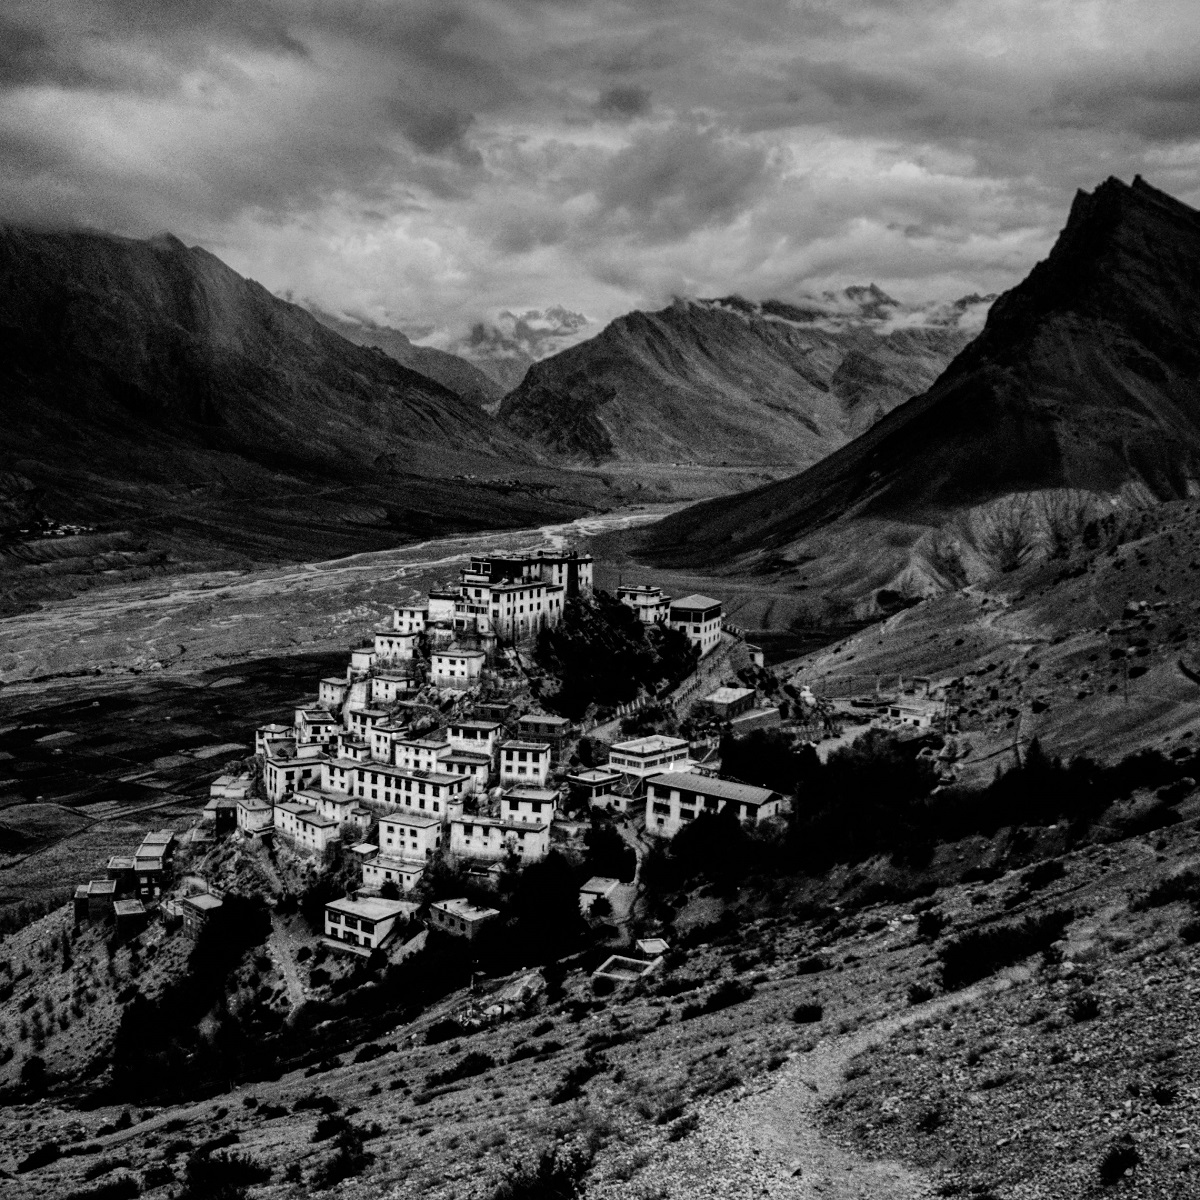 An ancient Buddhist monastery in Spiti valley in the Indian Himalayas. The region is cut off from the rest of the world by snow for almost six months in a year.